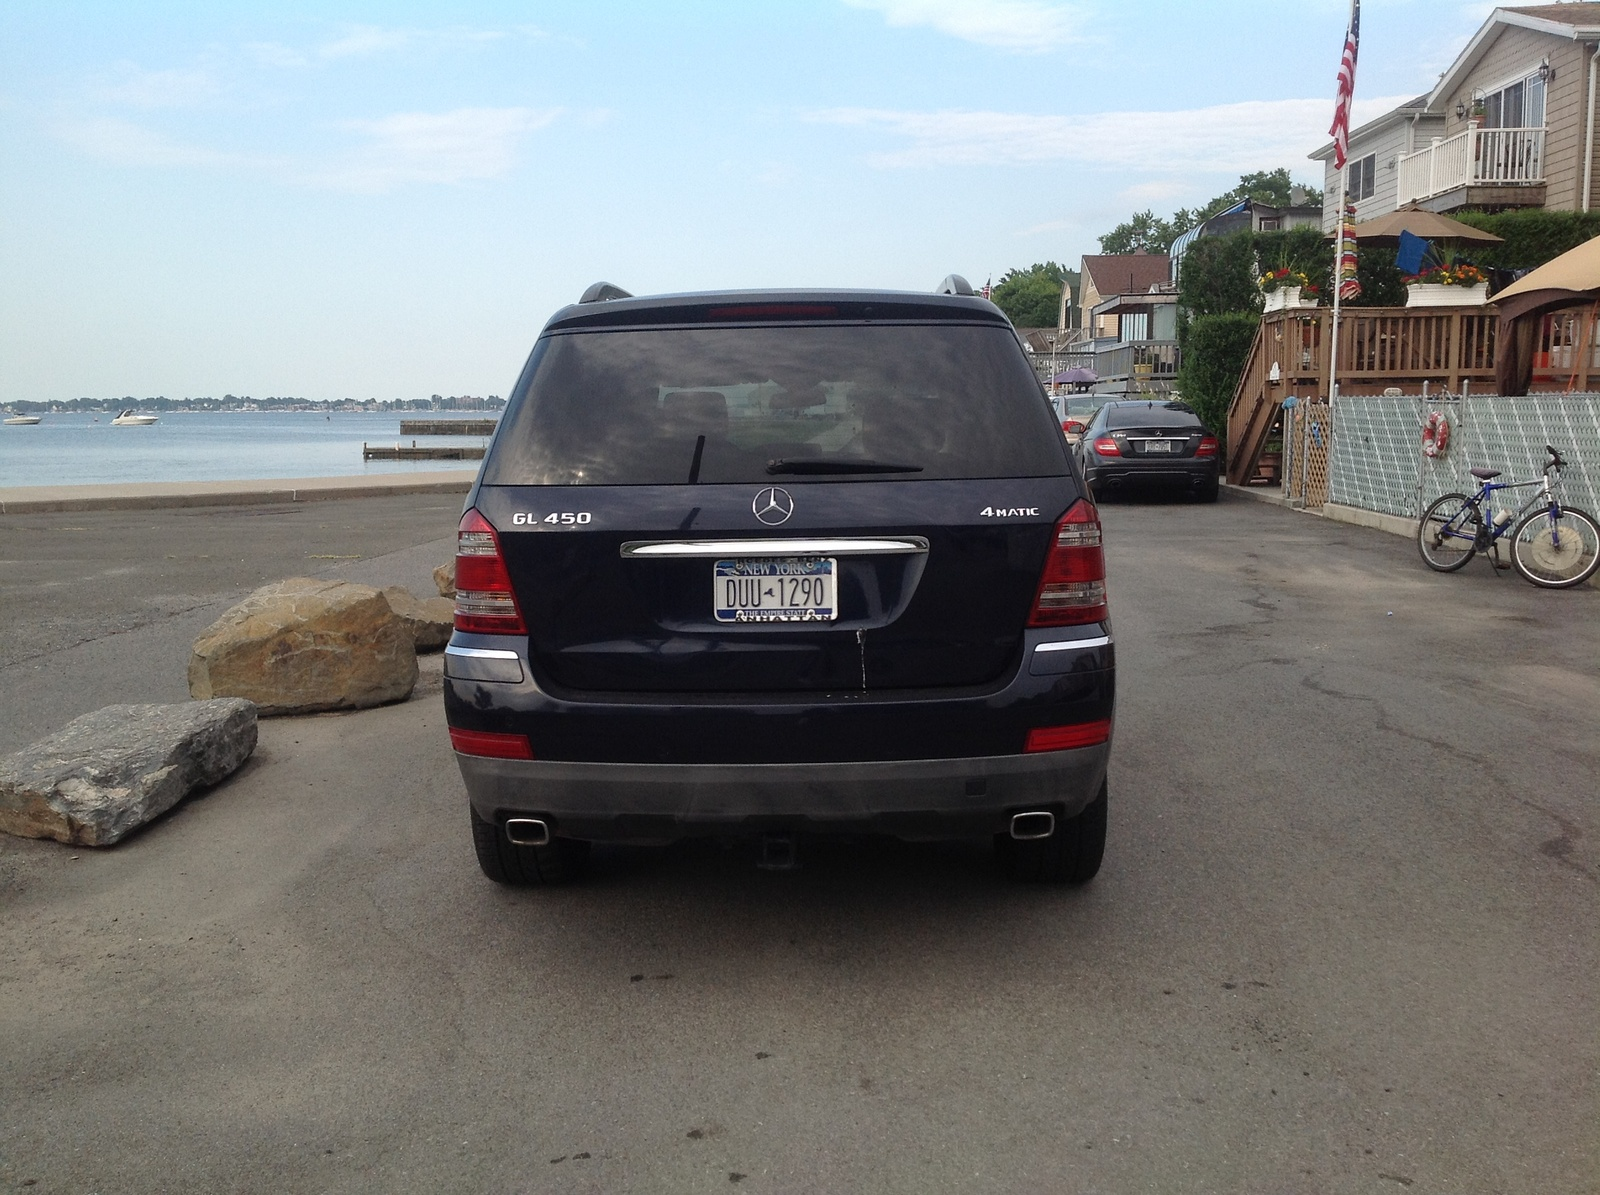 Picture of 2007 mercedes benz gl class gl450 exterior for 2007 mercedes benz gl 450